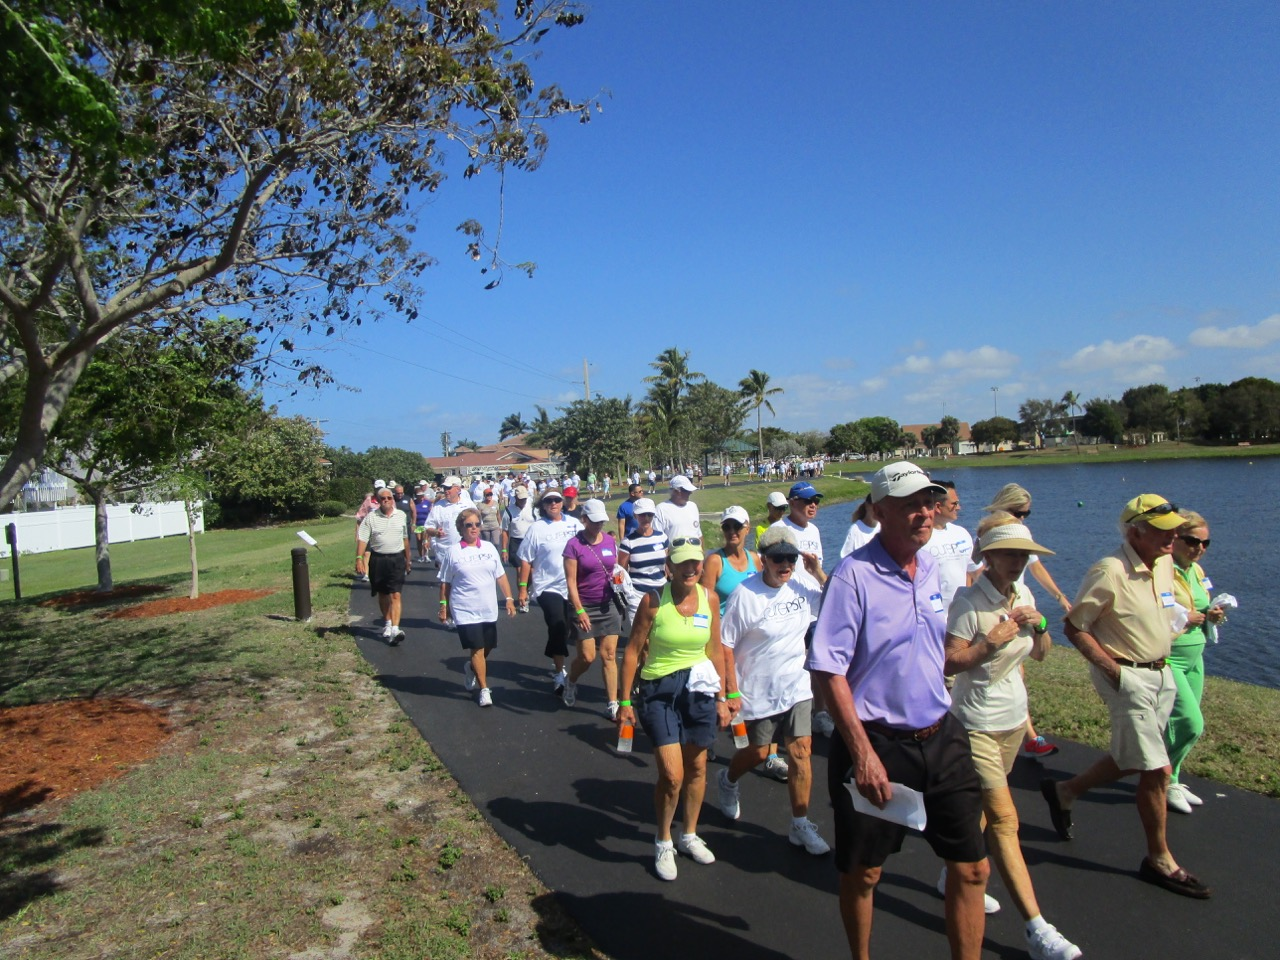 The 17th Annual CurePSP Awareness and Memorial Walk